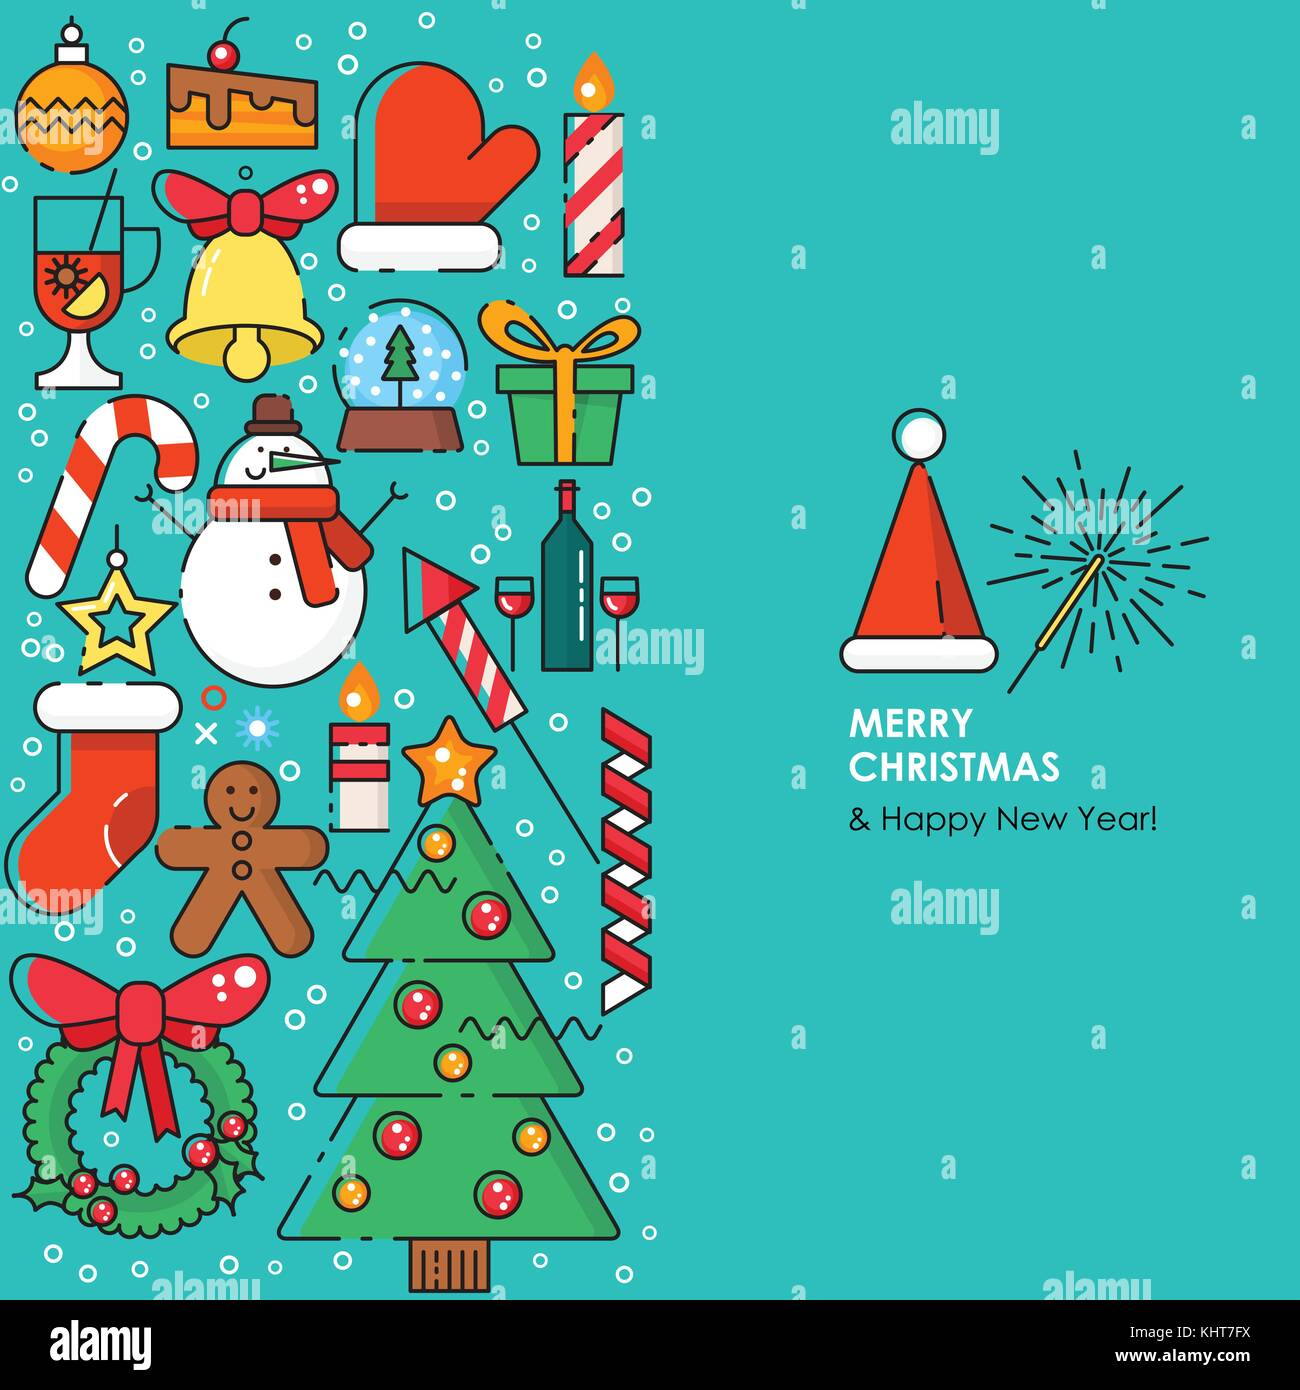 Merry Christmas greeting card. Happy New year wishes. Poster in flat ...